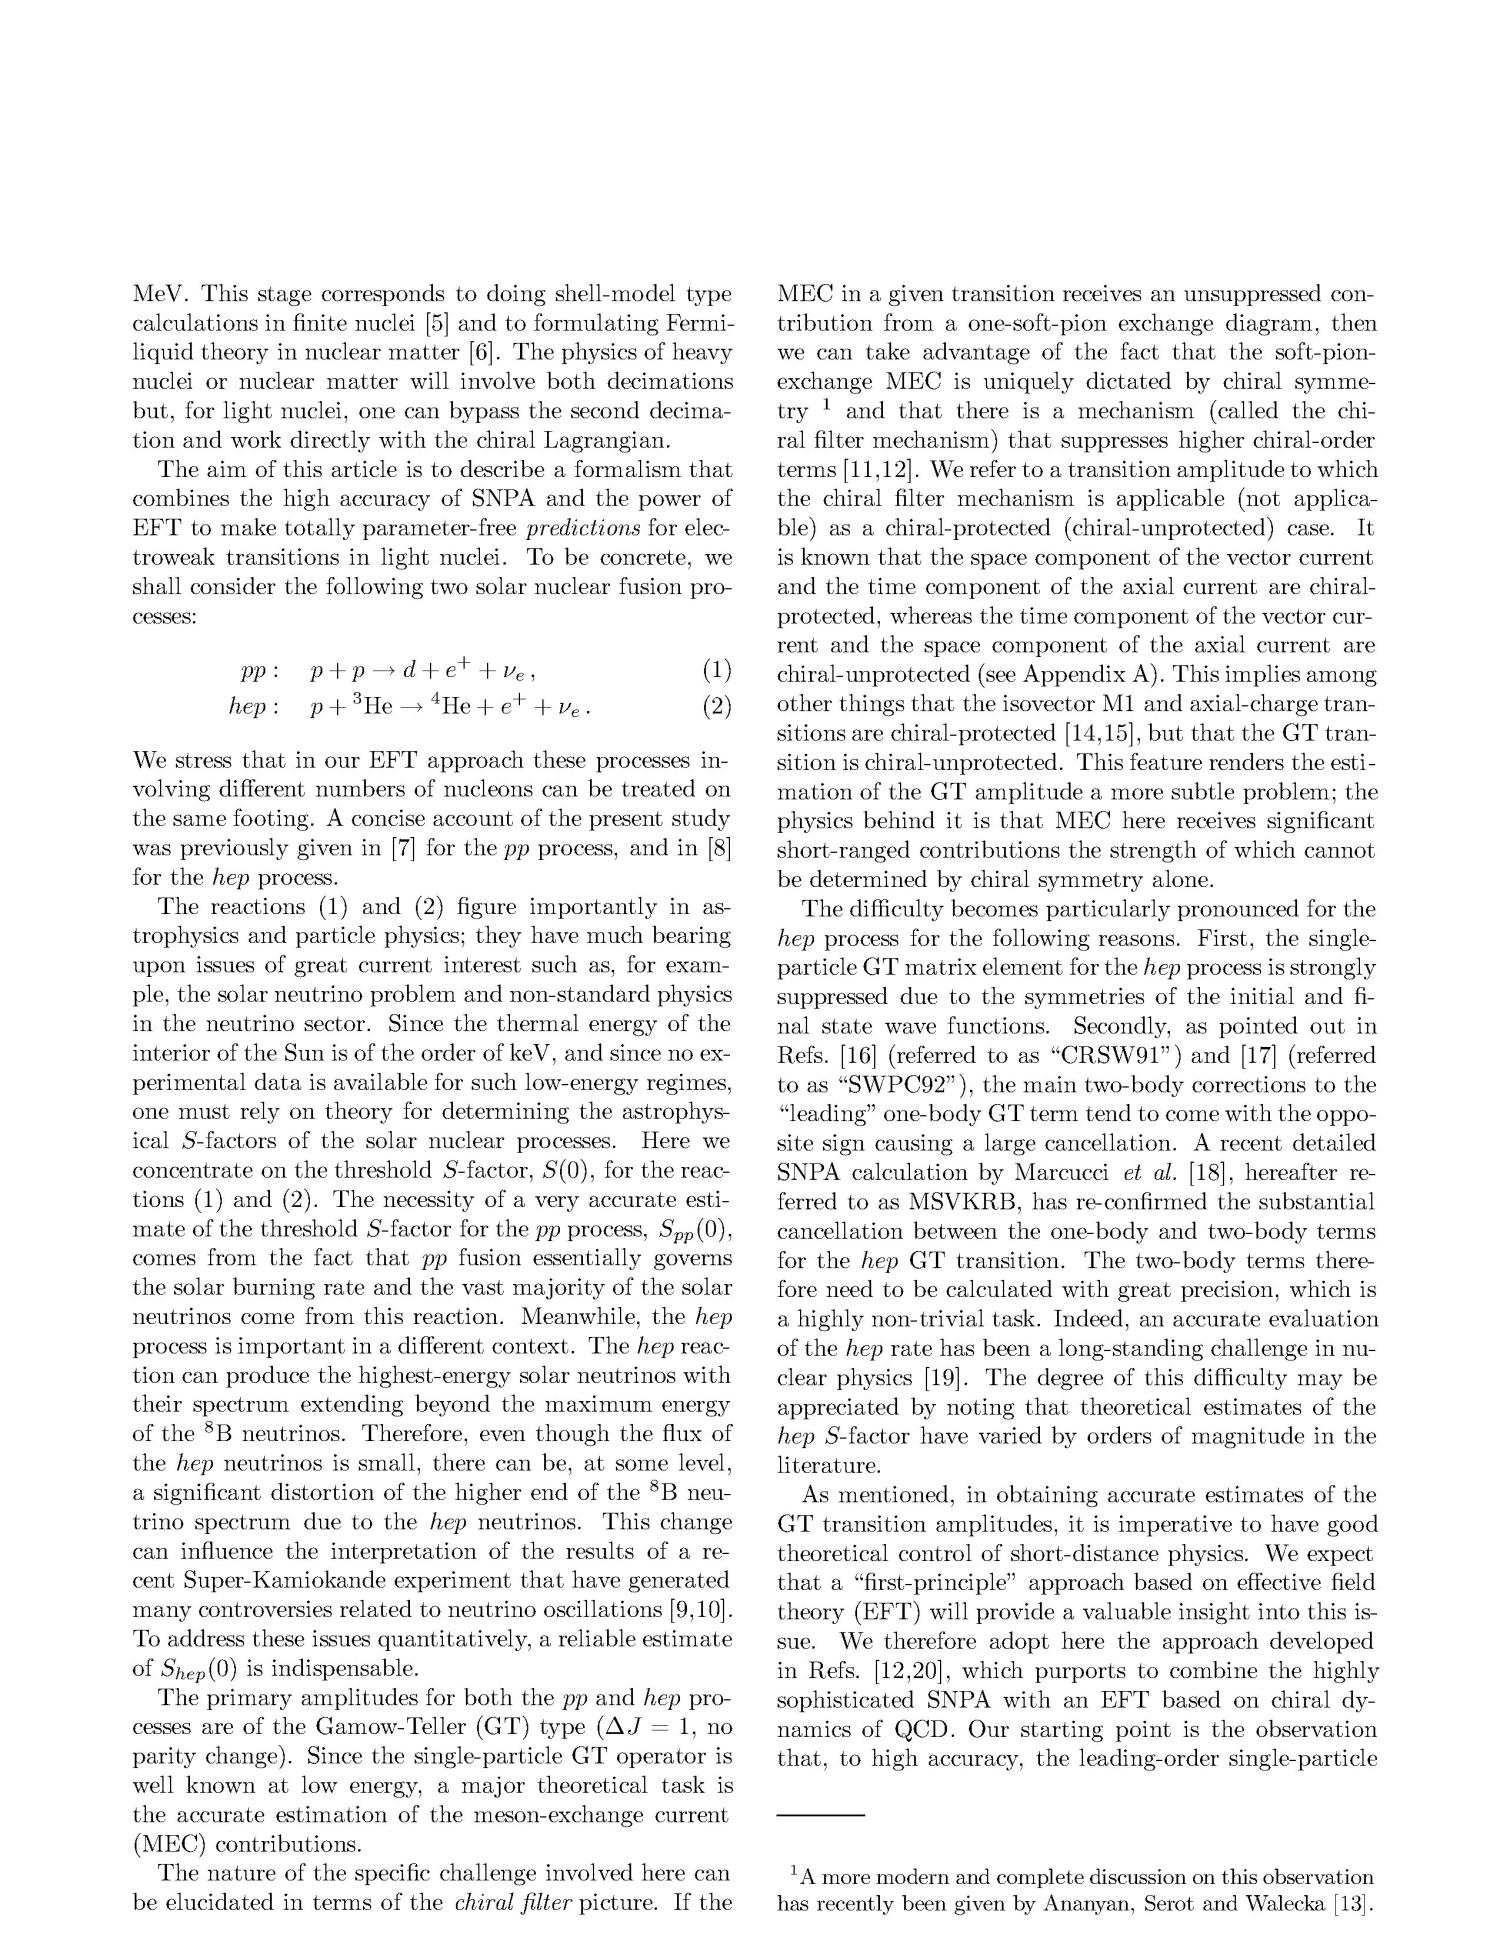 Parameter-free effective field theory calculation for the solar proton-fusion and hep processes                                                                                                      [Sequence #]: 2 of 22